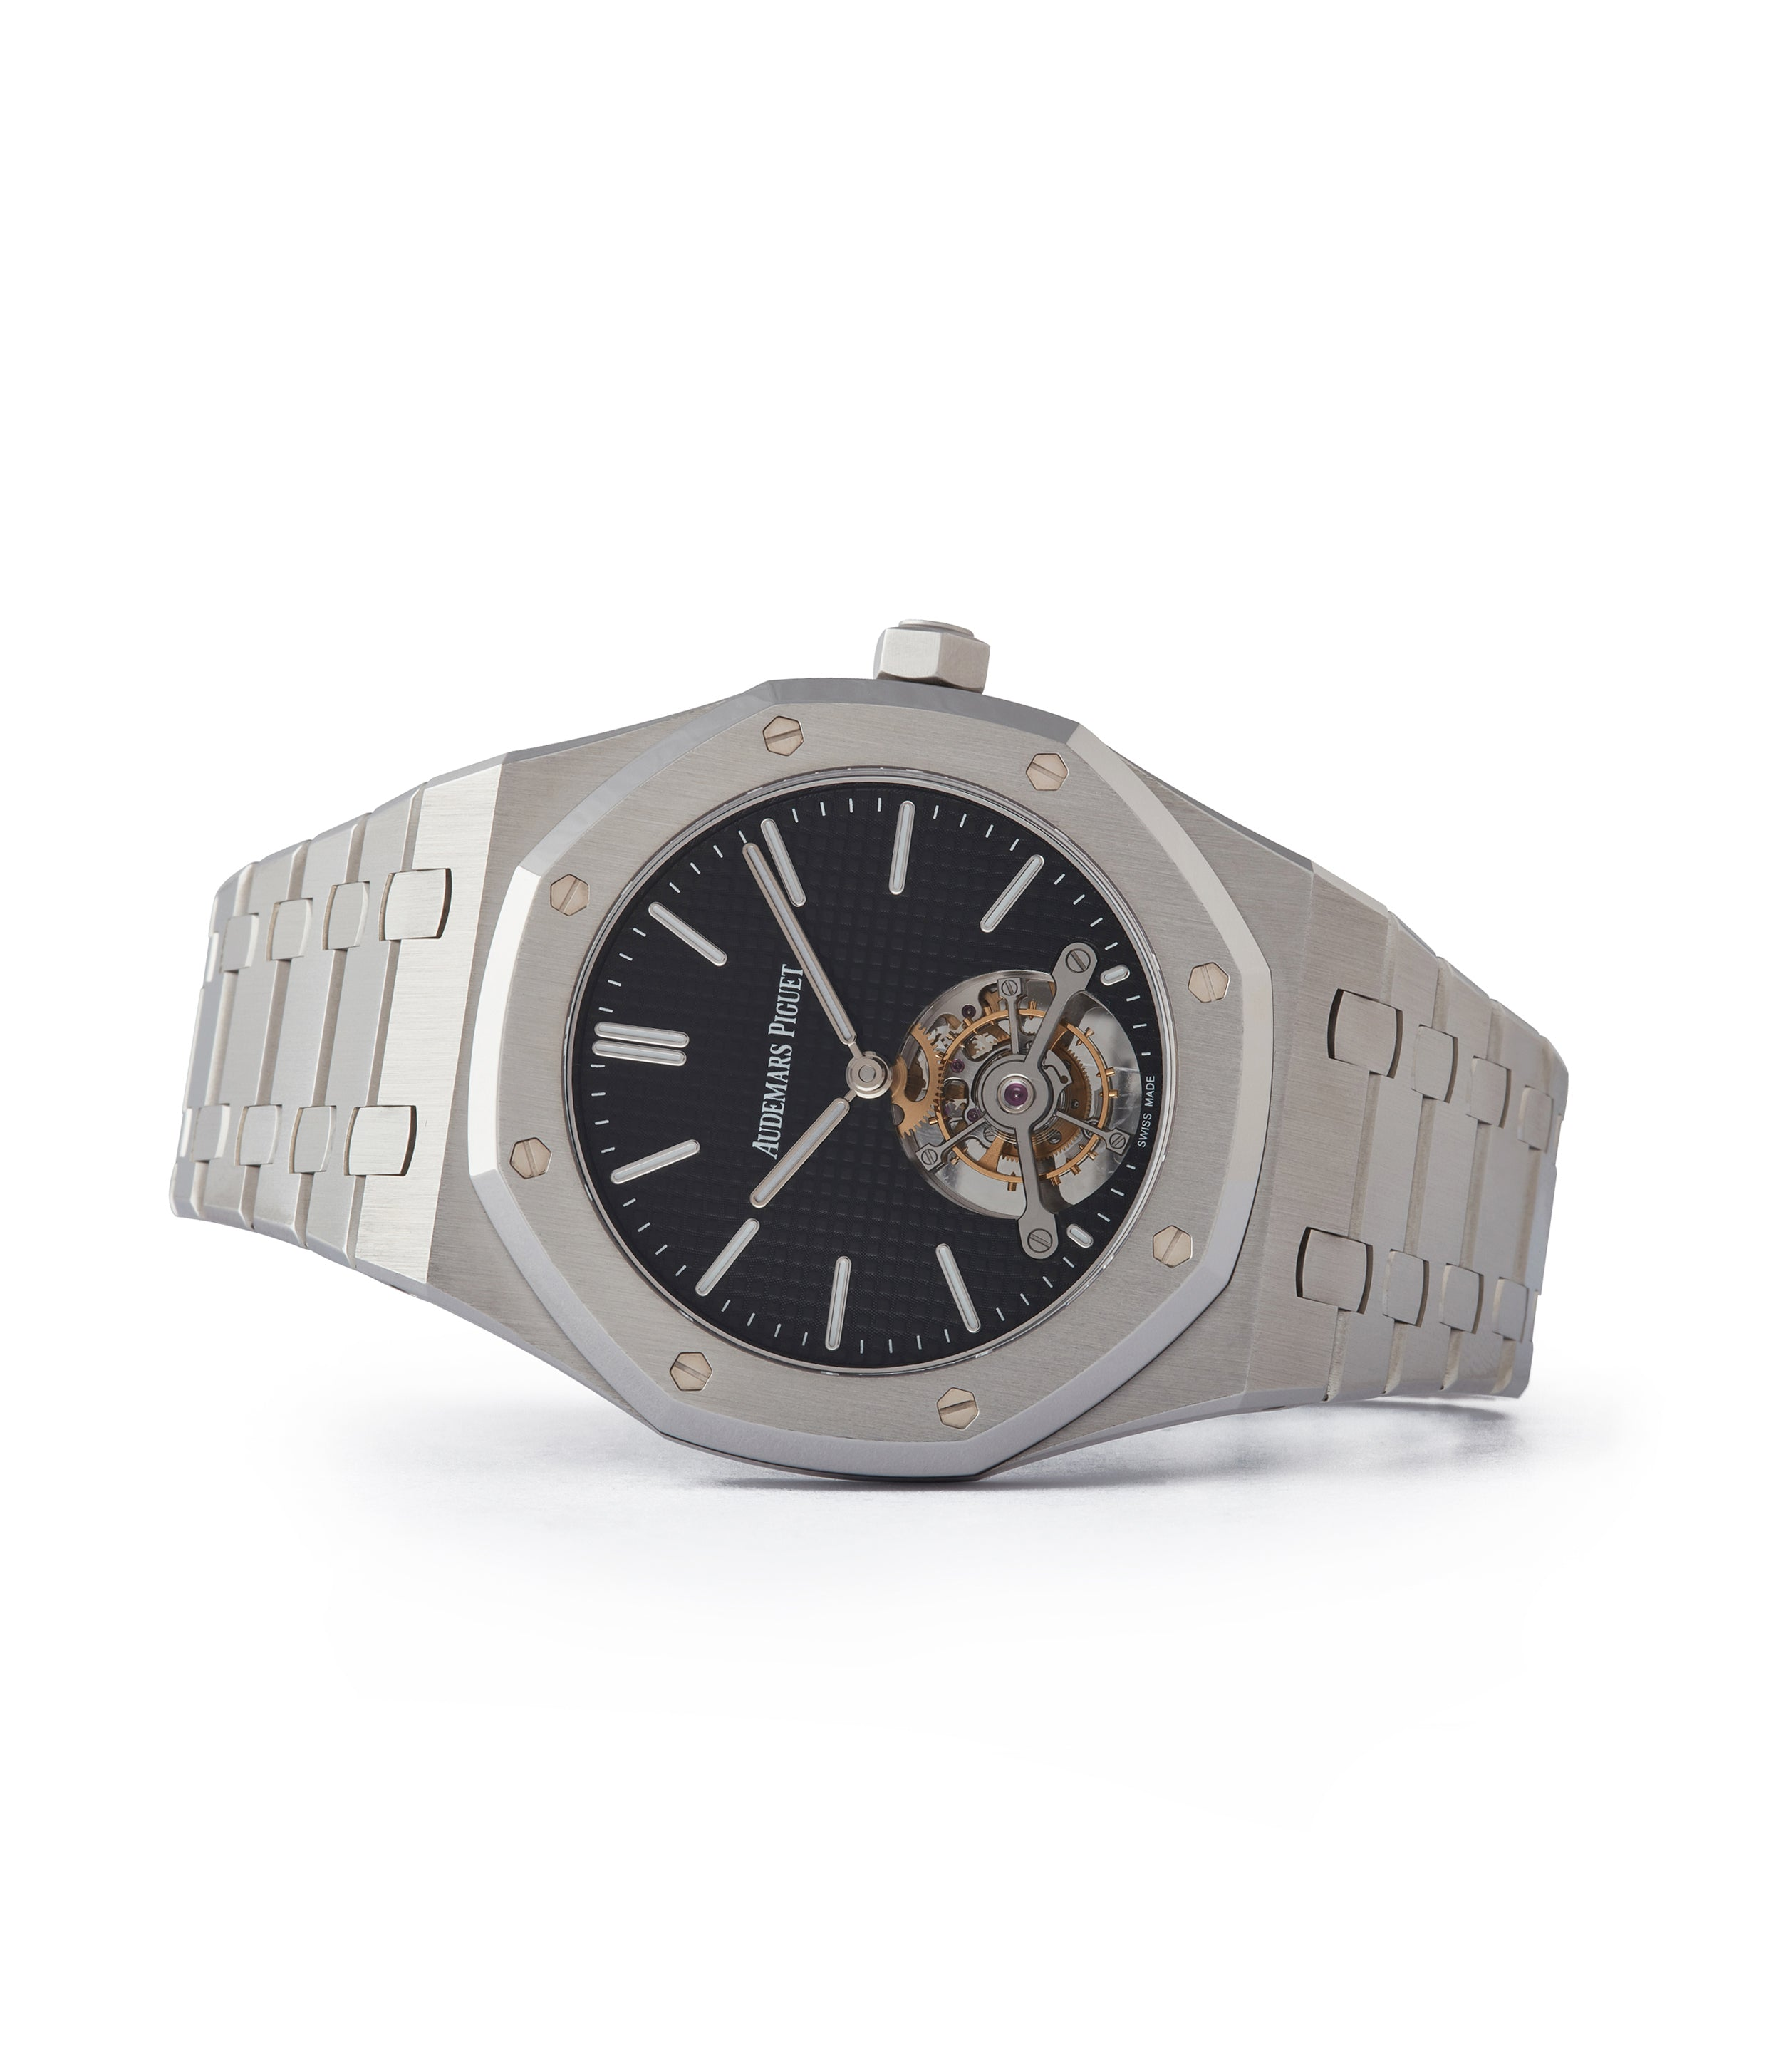 side-shot rare Audemars Piguet Royal Oak Tourbillon extra-slim Special Edition Japanese steel pre-owned watch for sale online at A Collected Man London UK specialist of rare watches